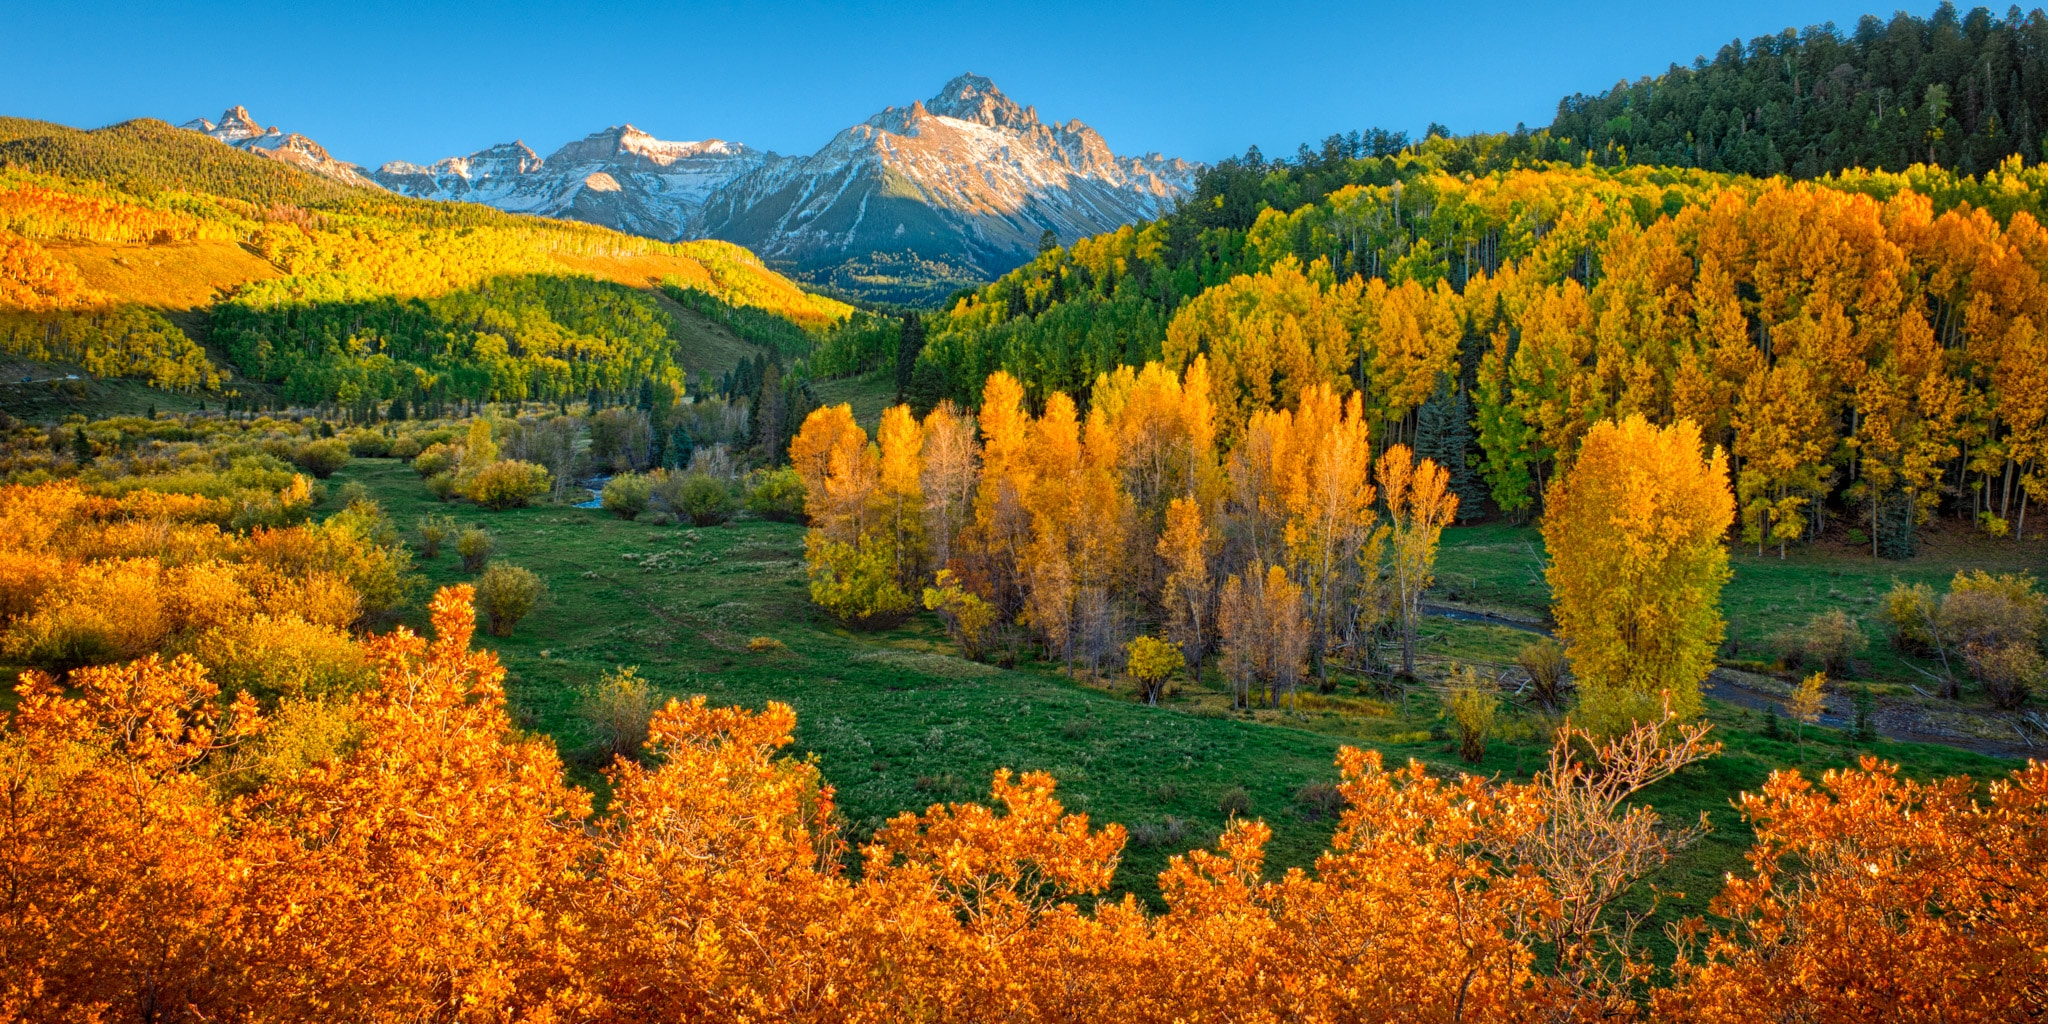 Late afternoon light illuminates Mt. Sneffels and causes the orange Gambel oaks and yellow aspens to glow, as seen from CR 7 near Ridgway, Colorado.